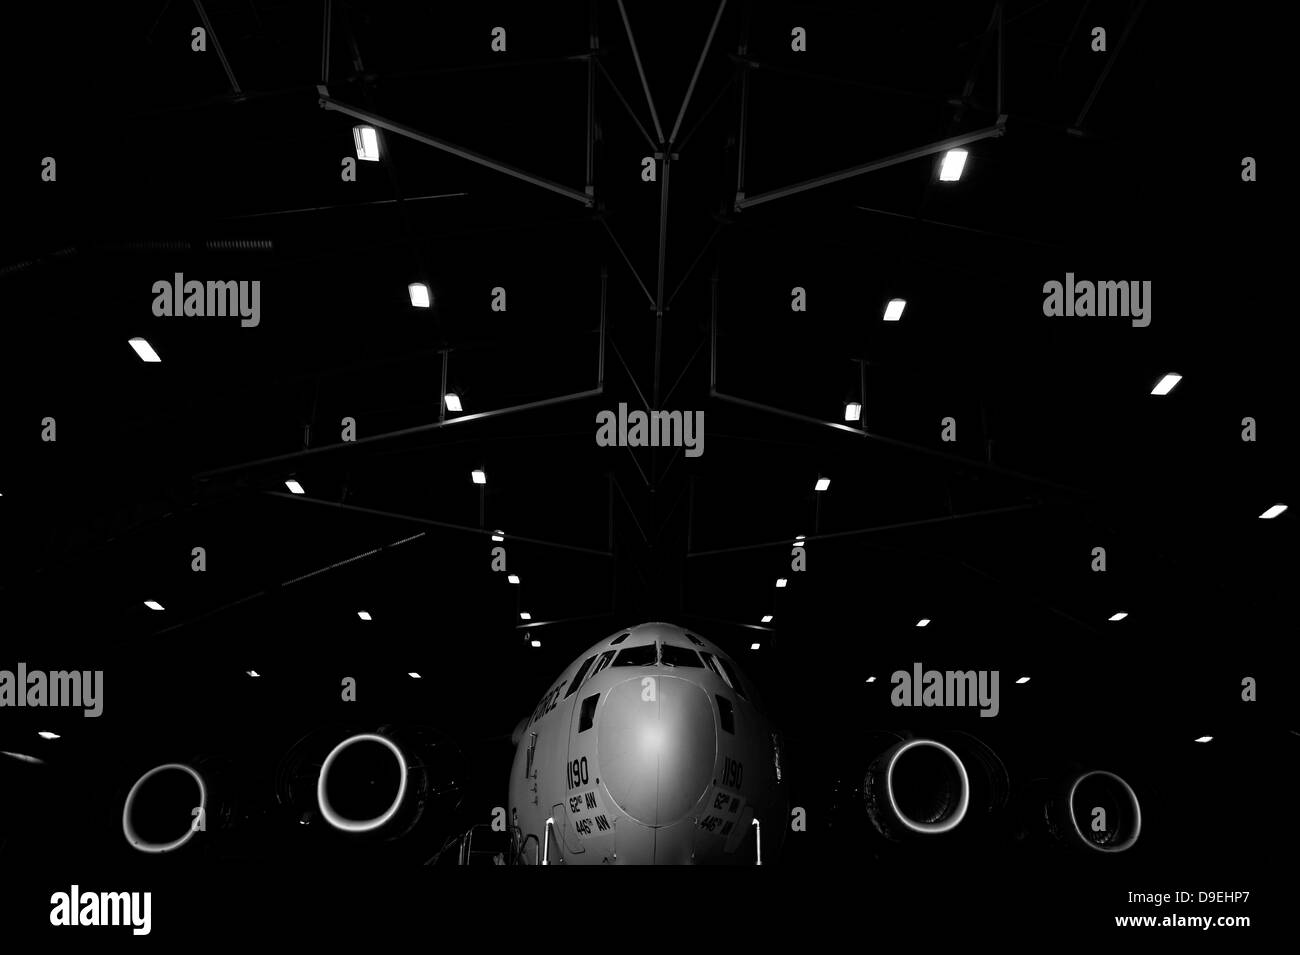 A C-17 Globemaster III sits in a hangar at McChord Field Air Force Base, Washington. - Stock Image